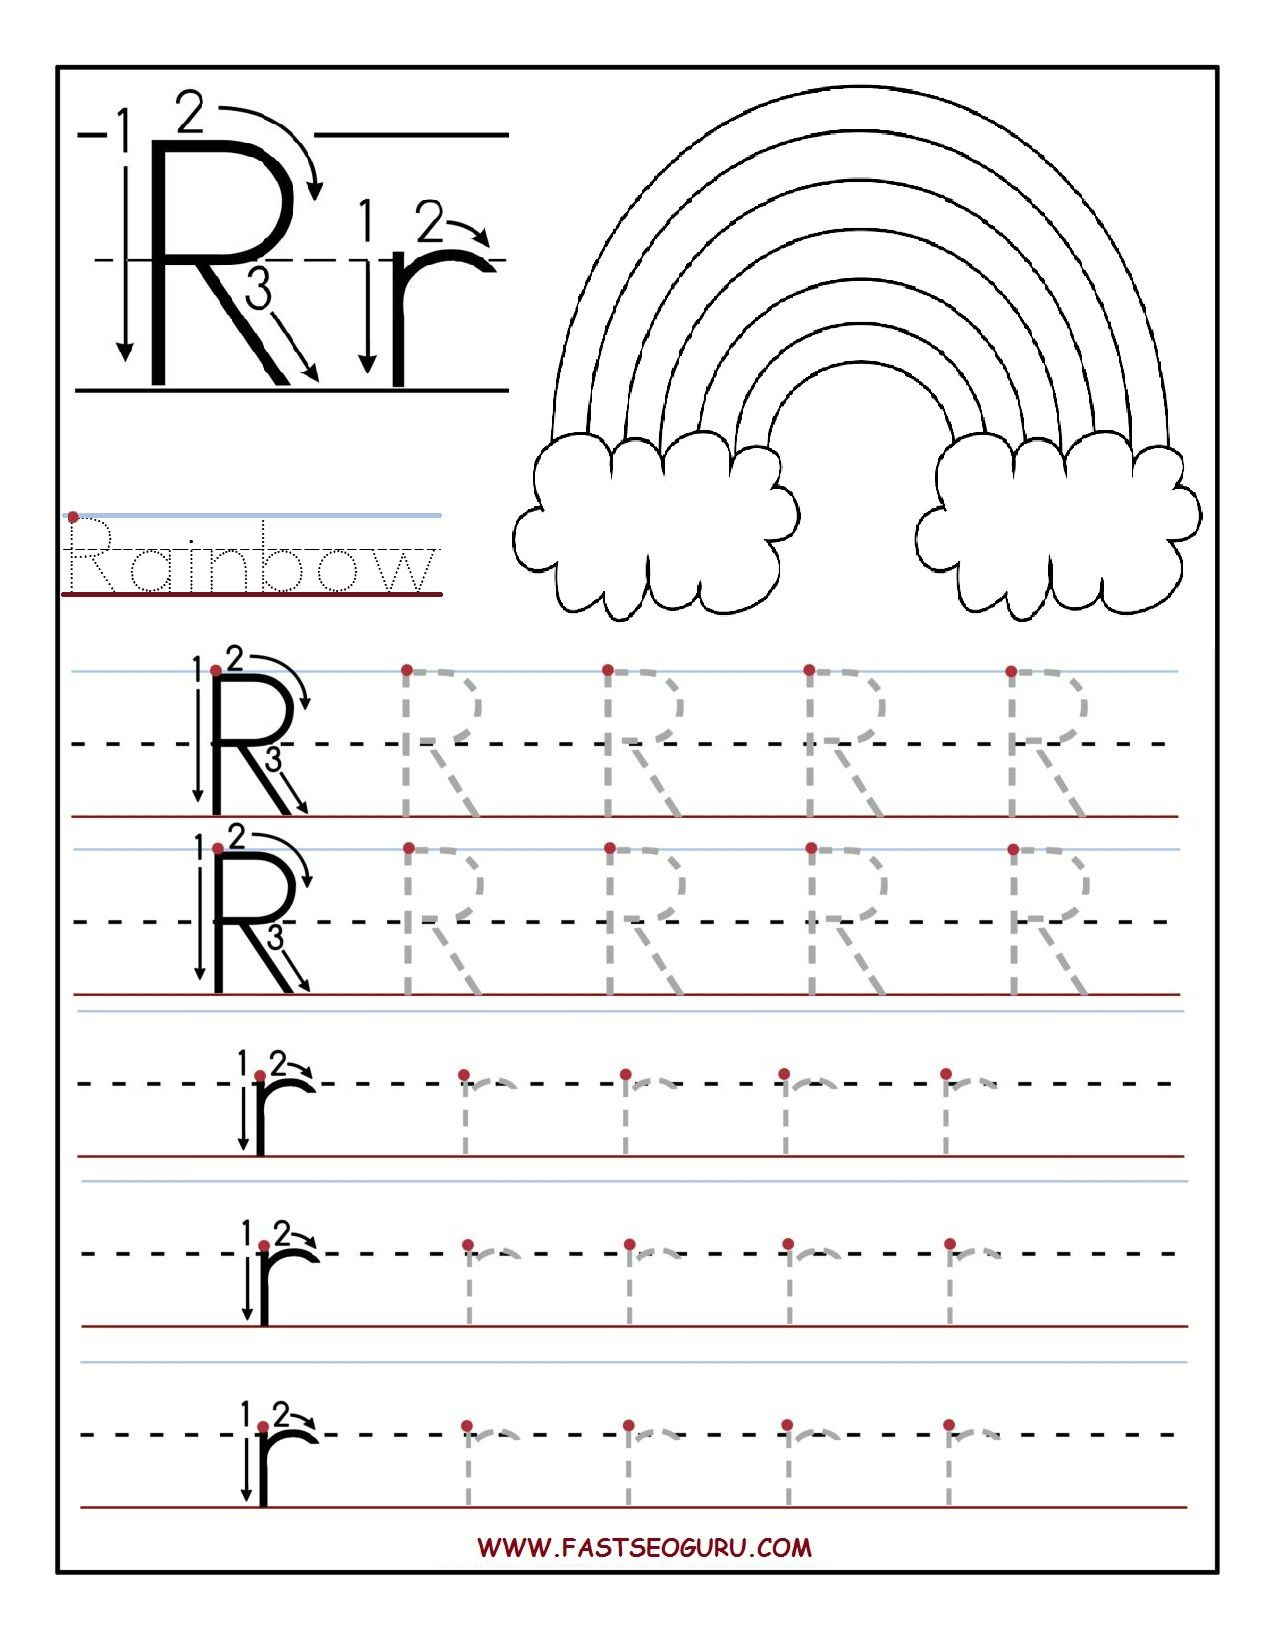 Printable Letter R Tracing Worksheets For Preschool in Letter R Worksheets Preschool